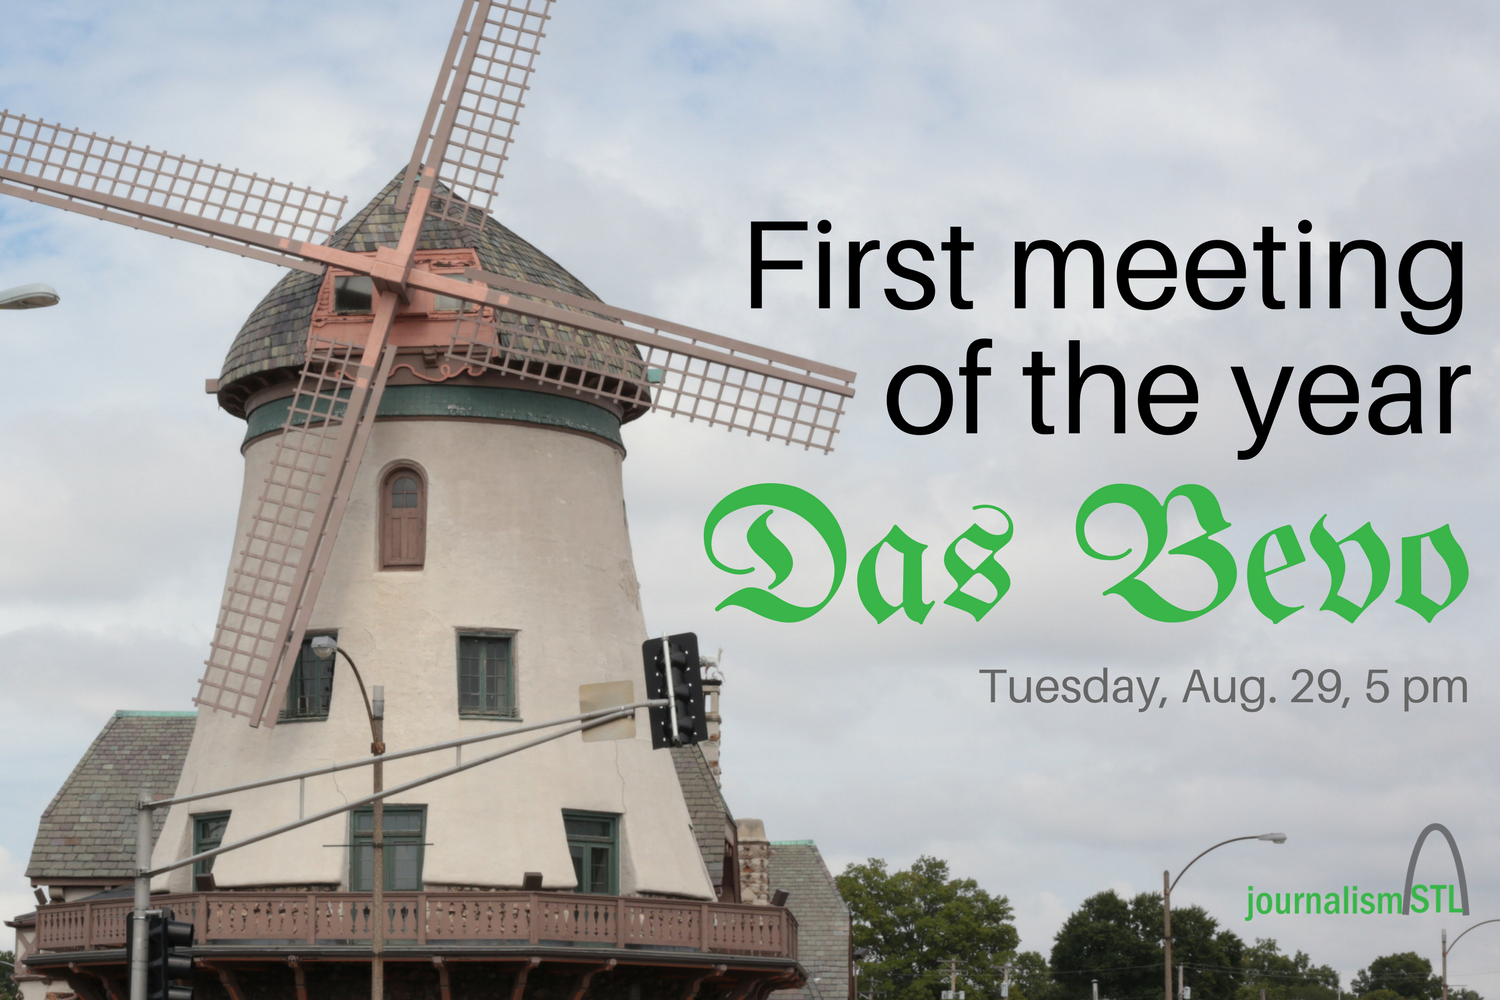 The+first+jSTL+meeting+of+2017-2018+is+Tuesday%2C+August+29+at+5+pm+at+Das+Bevo+%28formerly+known+as+Bevo+Mill%29.